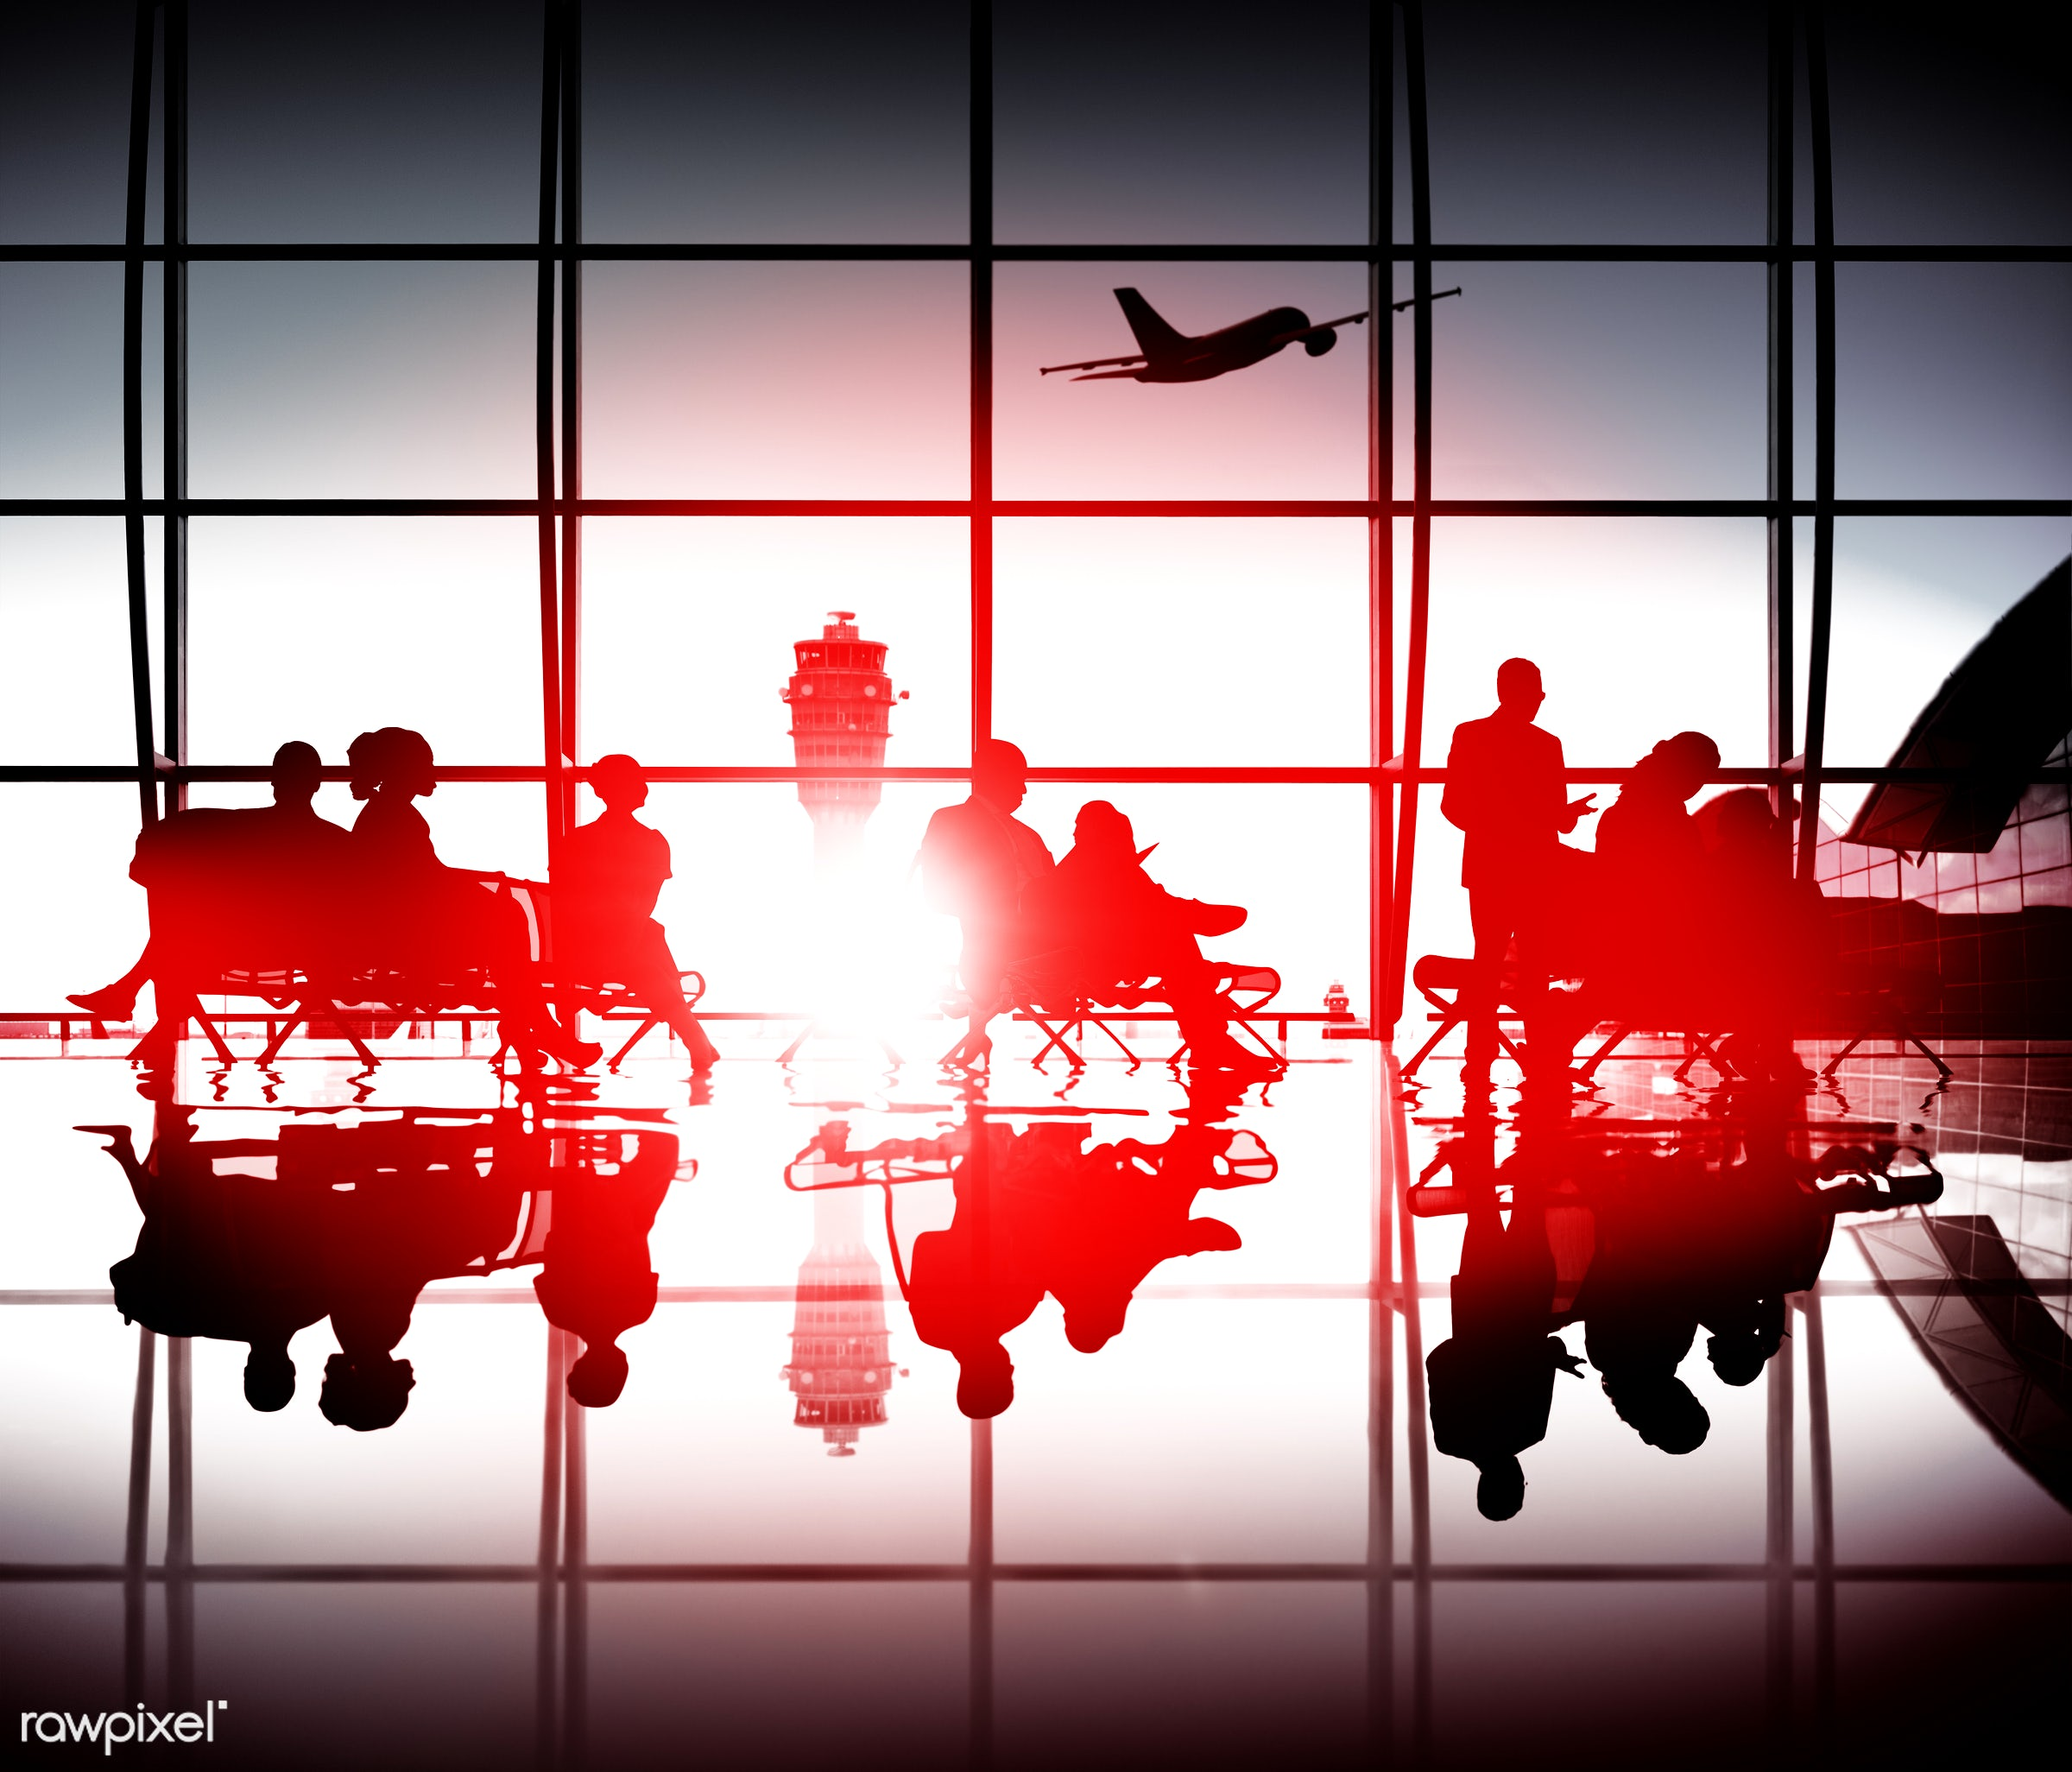 aircraft, airline, airplane, airport, arrival, back lit, business, business people, business travel, businessmen,...